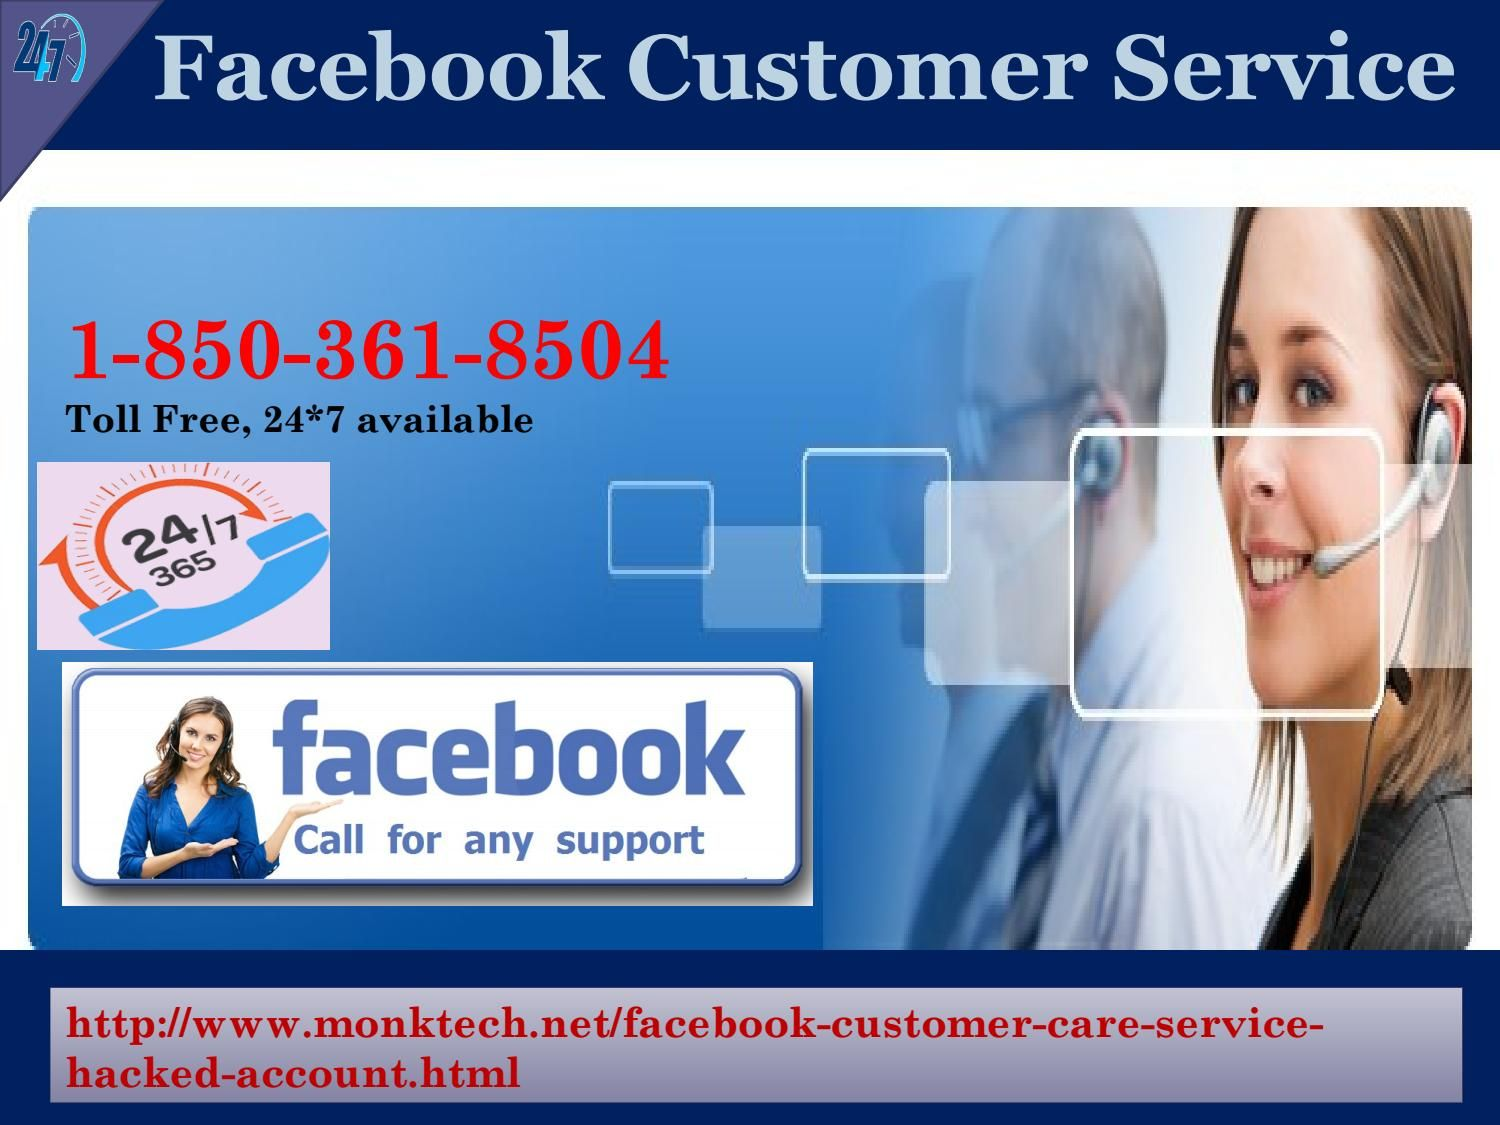 Now Facebook Customer Service 18503618504 is just one